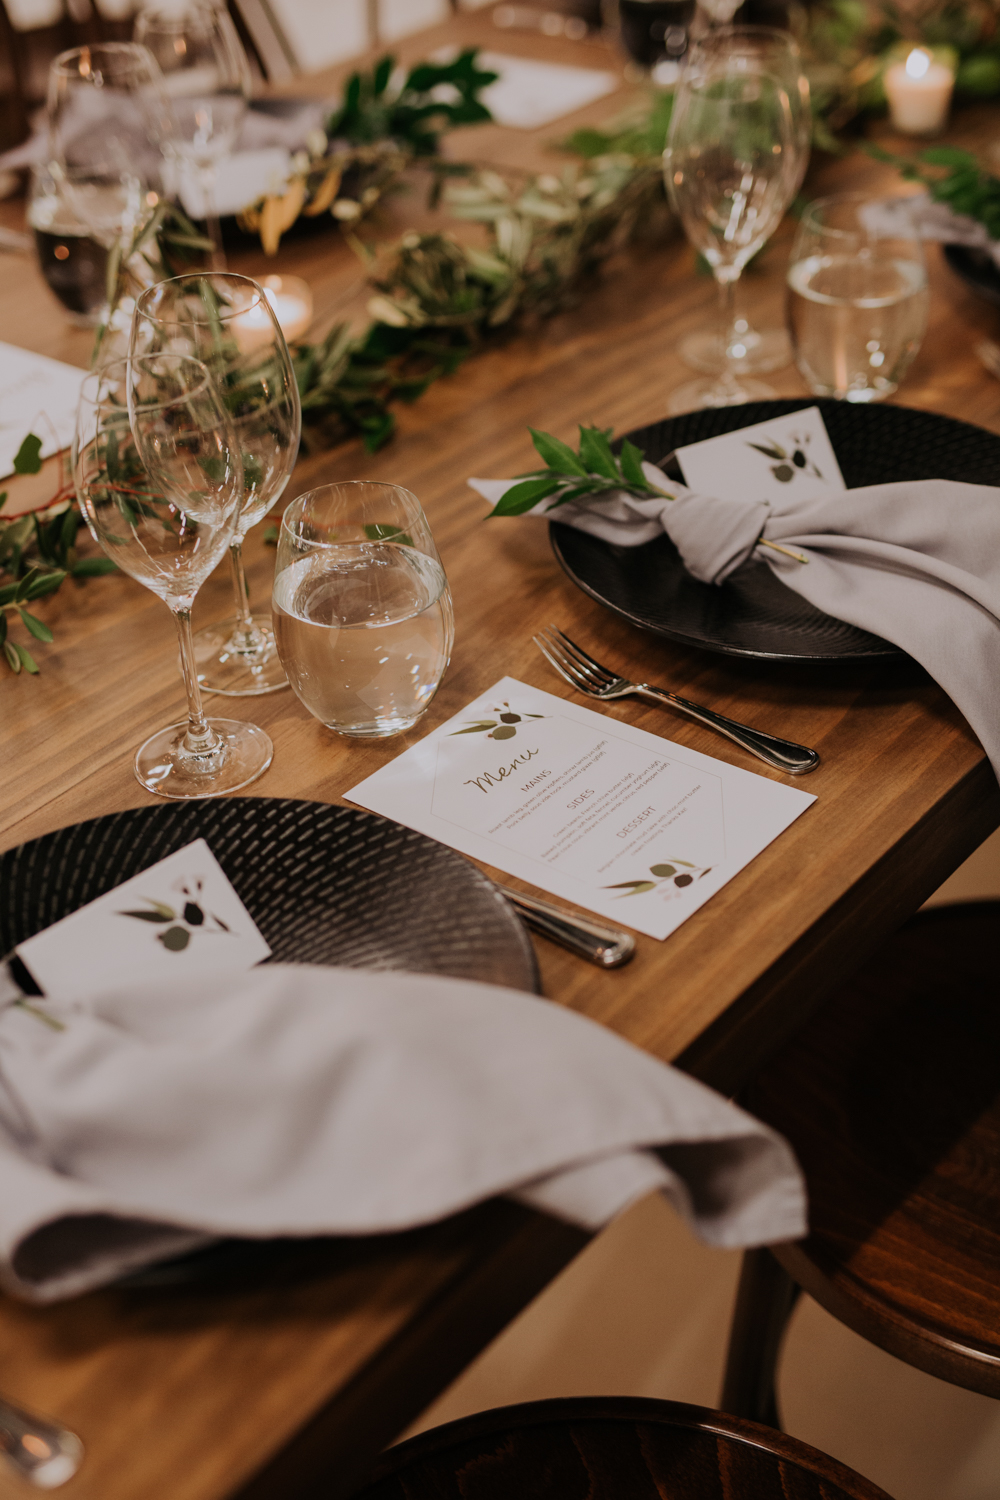 white+white weddings and events carrie and jay real wedding styling timber rustic studio warehouse venue black plates table setting